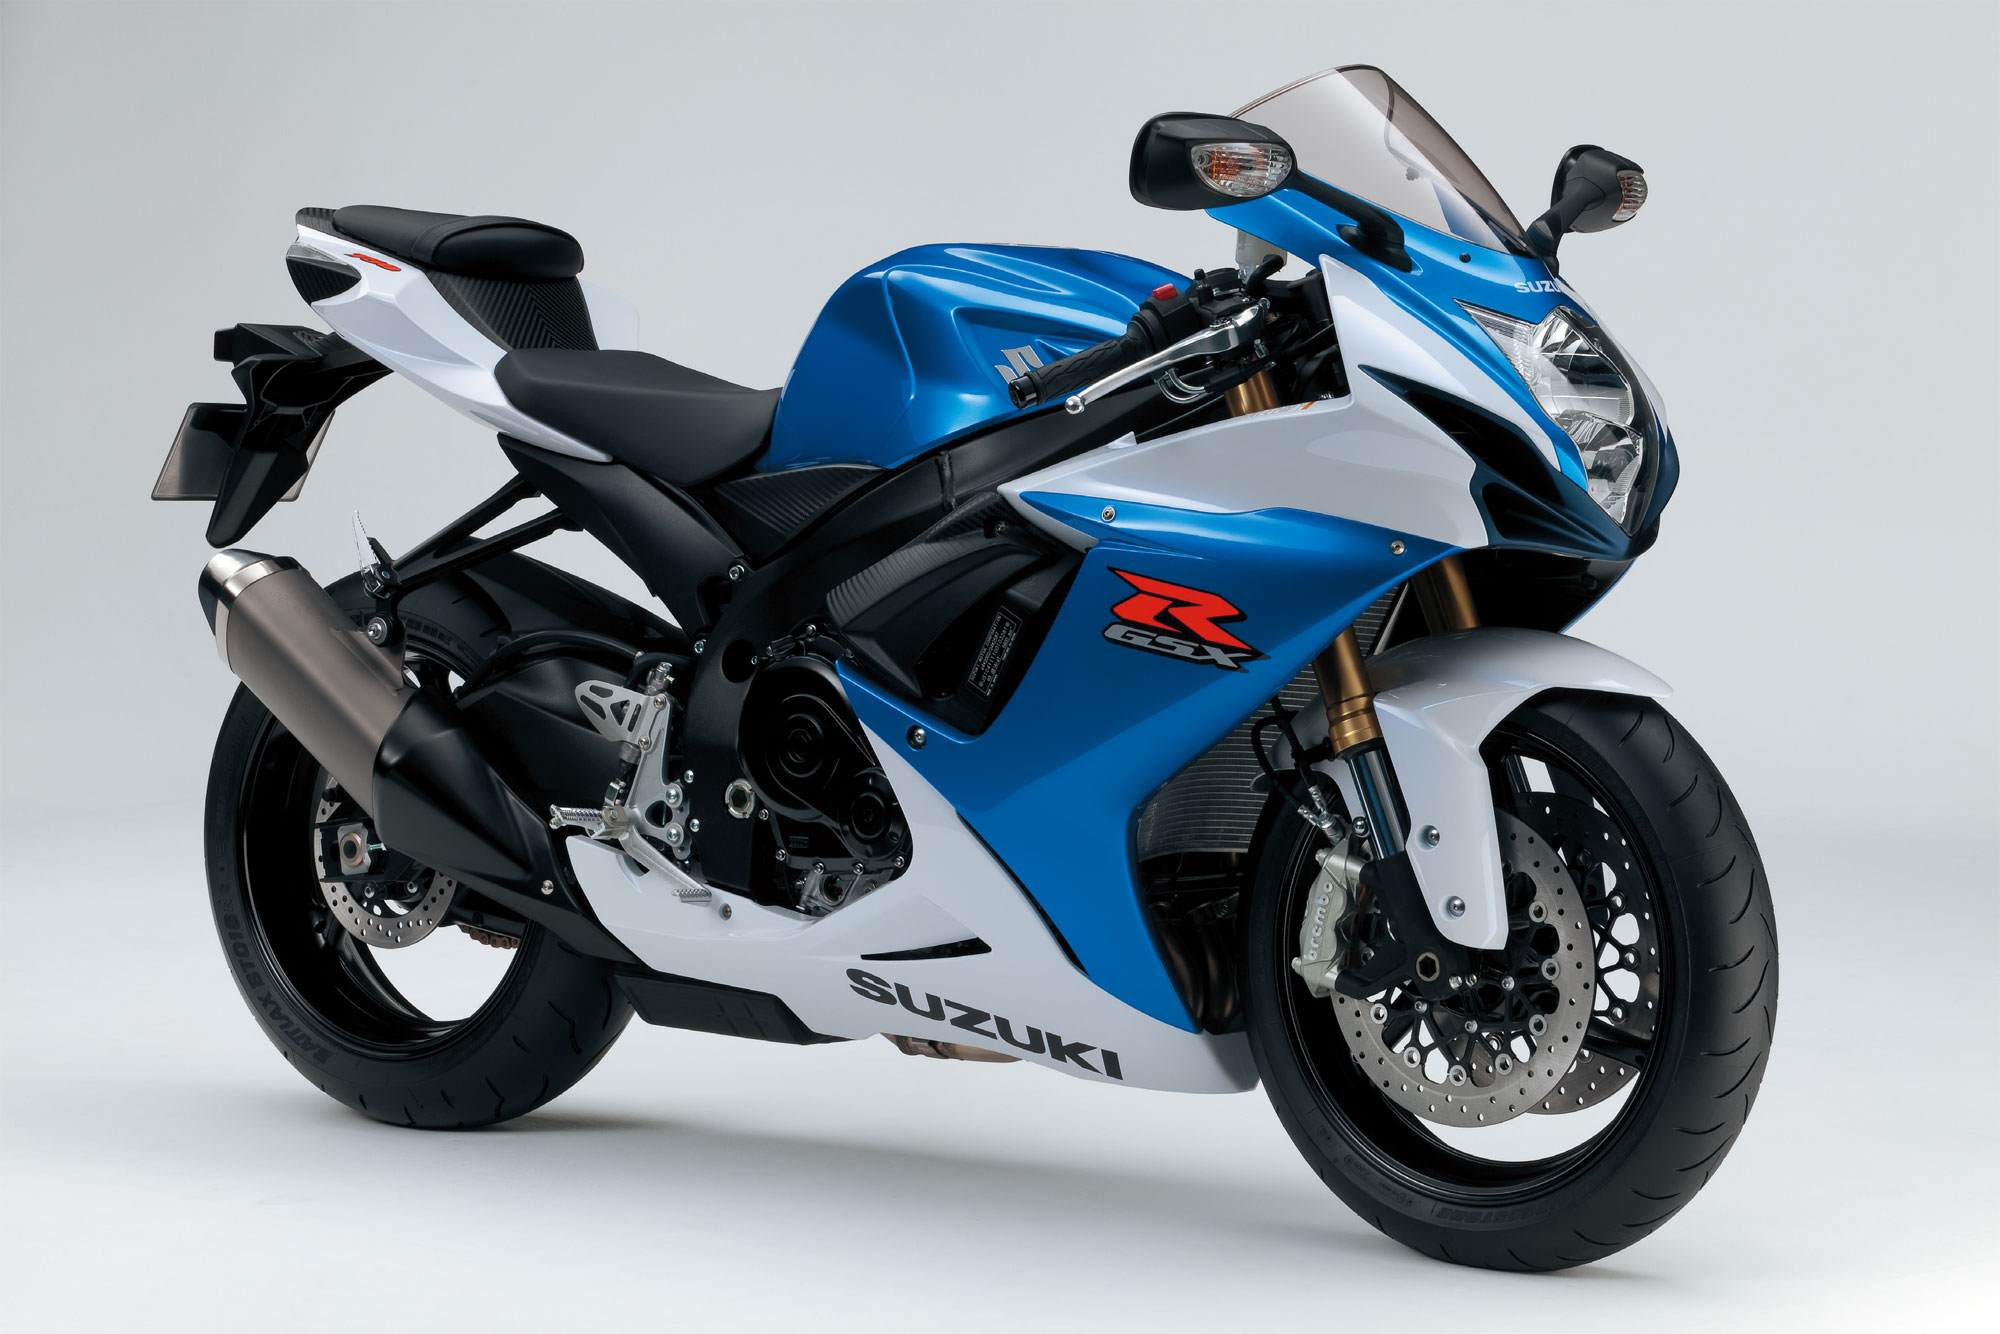 2013 suzuki gsx r750 pictures photos wallpapers top speed. Black Bedroom Furniture Sets. Home Design Ideas